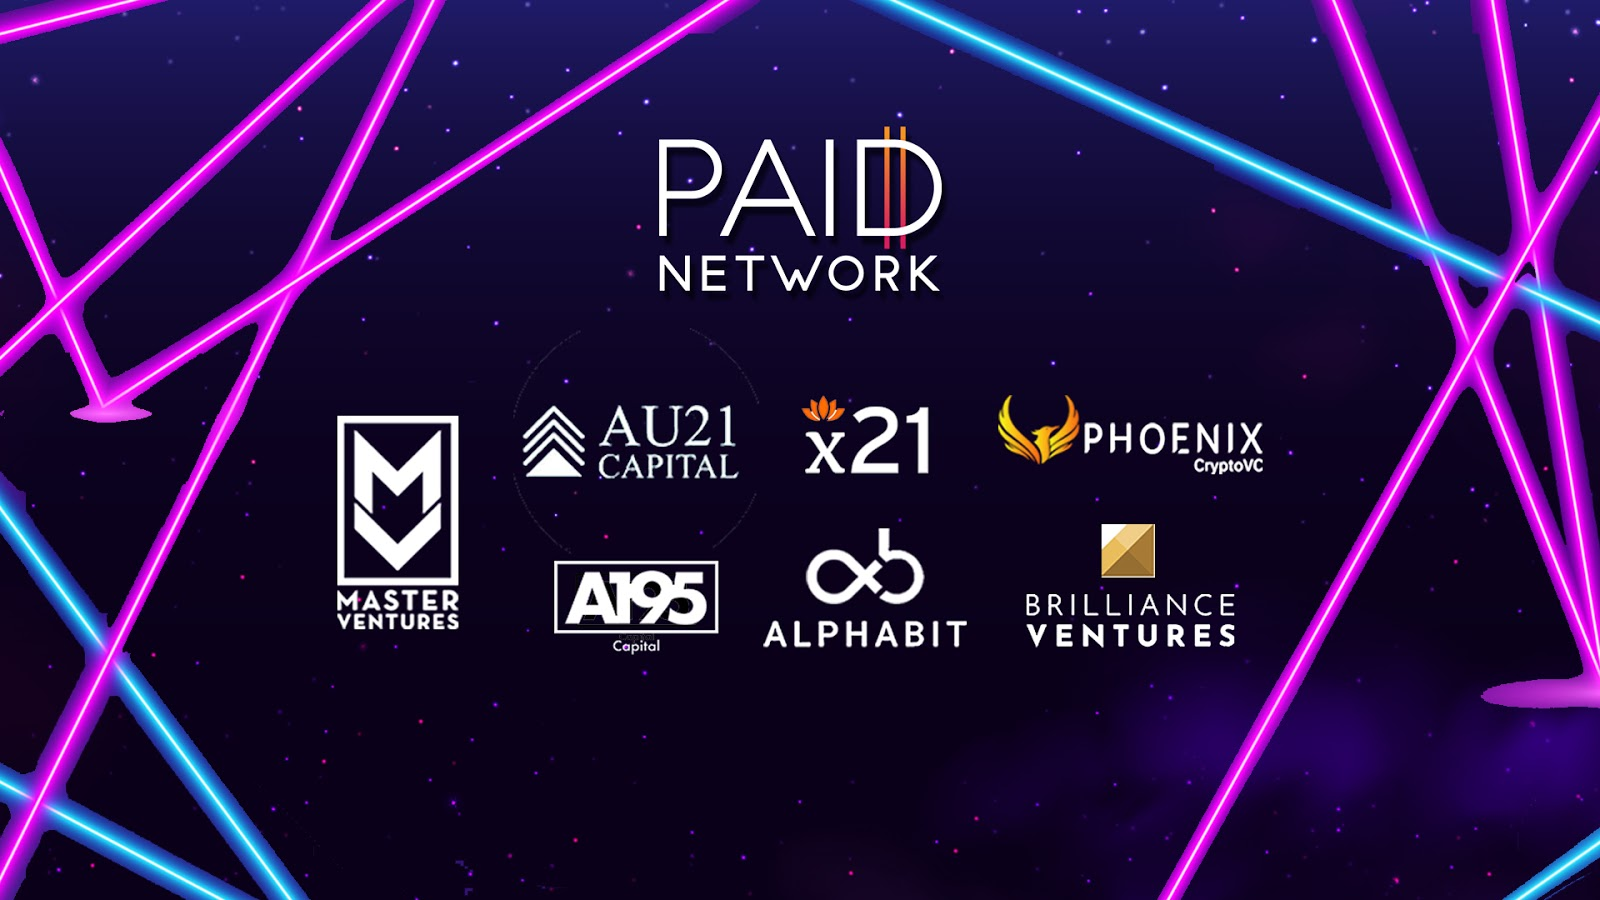 PAID <bold>Network</bold> raises $2M in funding